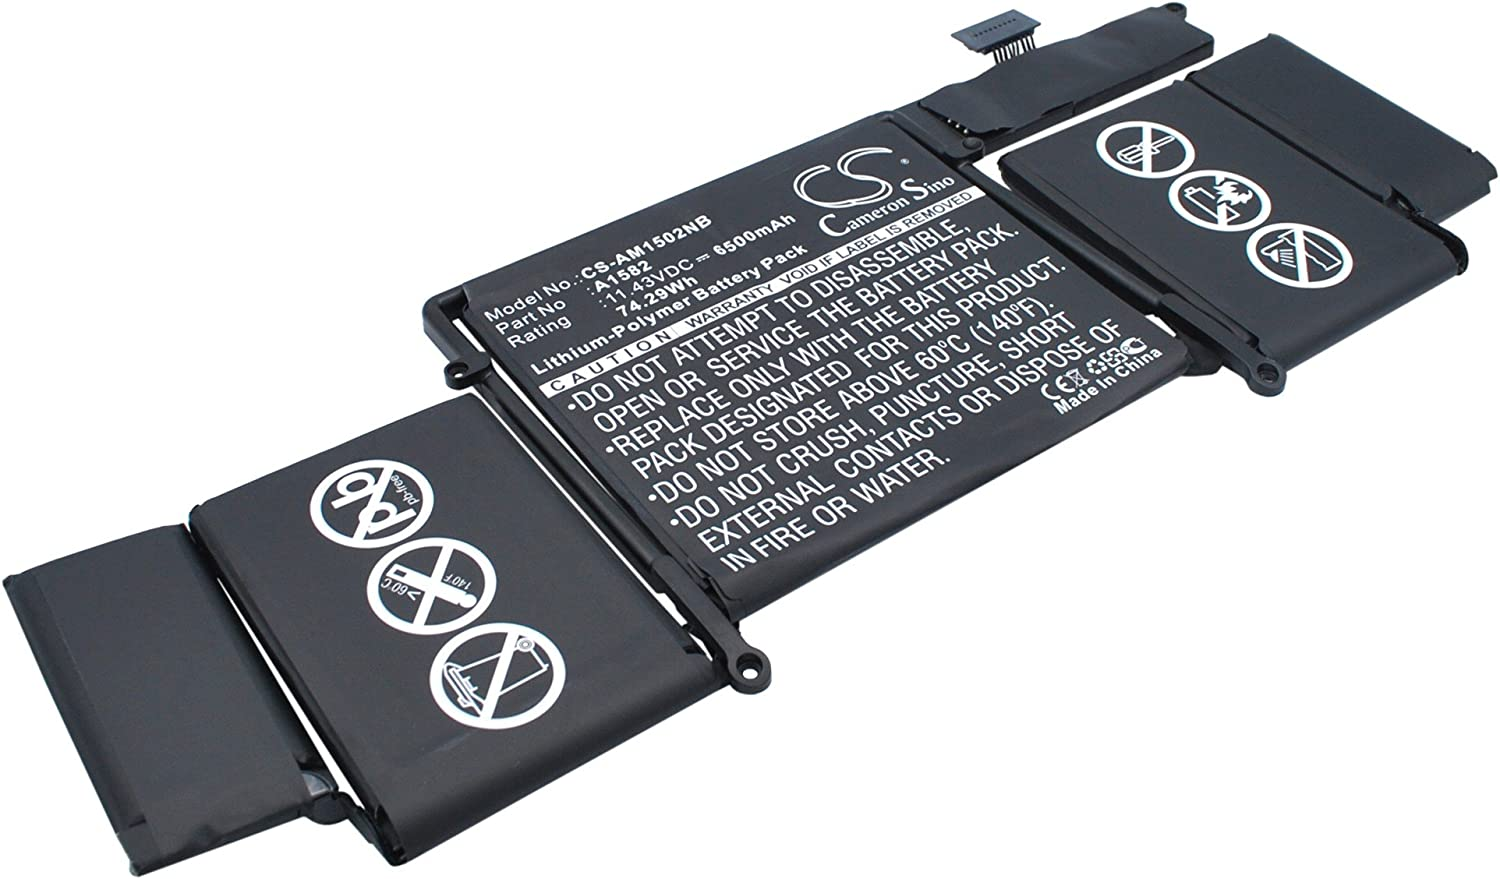 6500mAh Battery Replacement Fresno Mall for Now free shipping Applee MF841LL MacBo MF839LL A